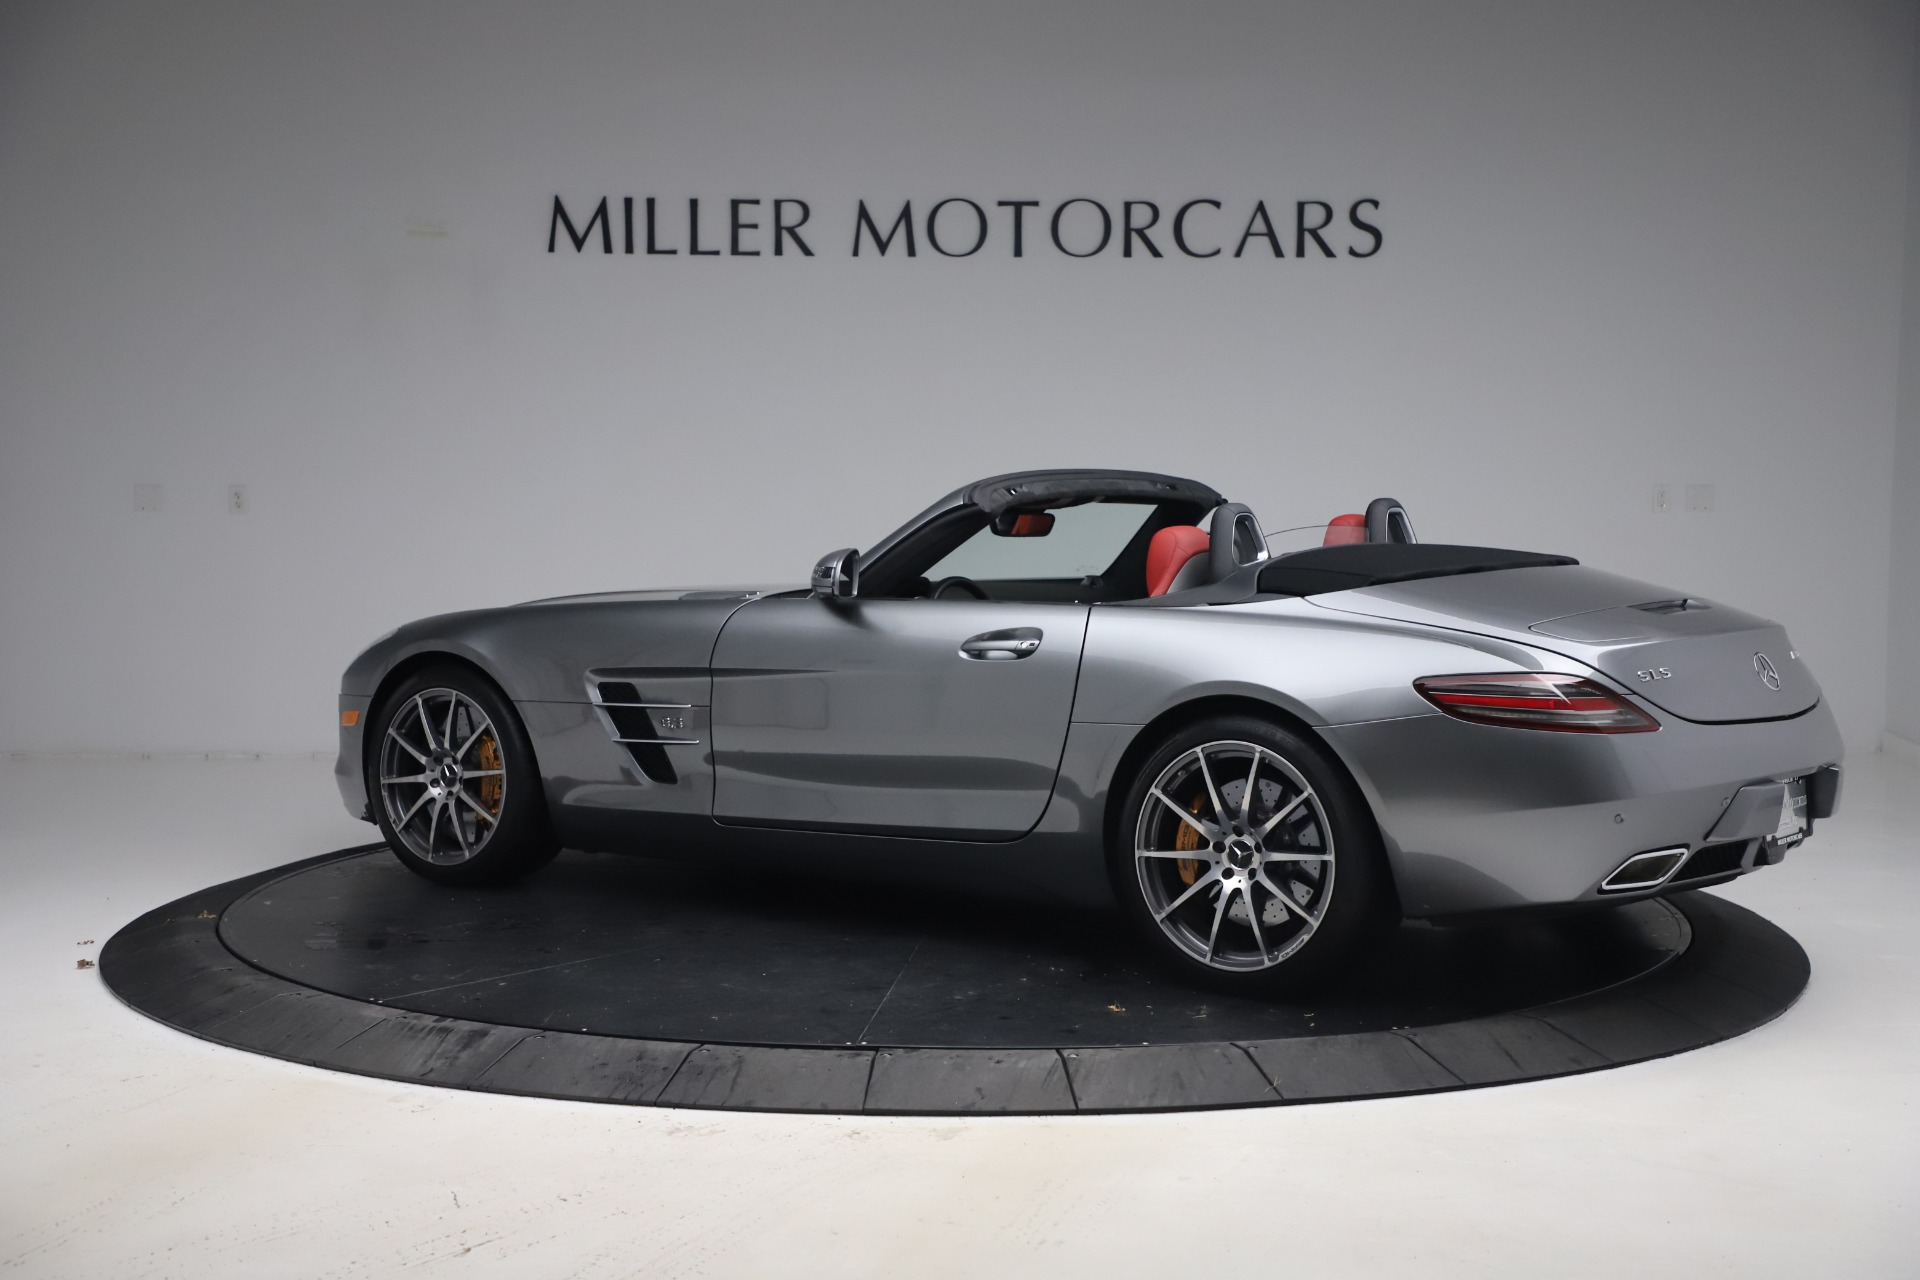 Used 2012 Mercedes-Benz SLS AMG  For Sale In Greenwich, CT. Alfa Romeo of Greenwich, 7563 3189_p5